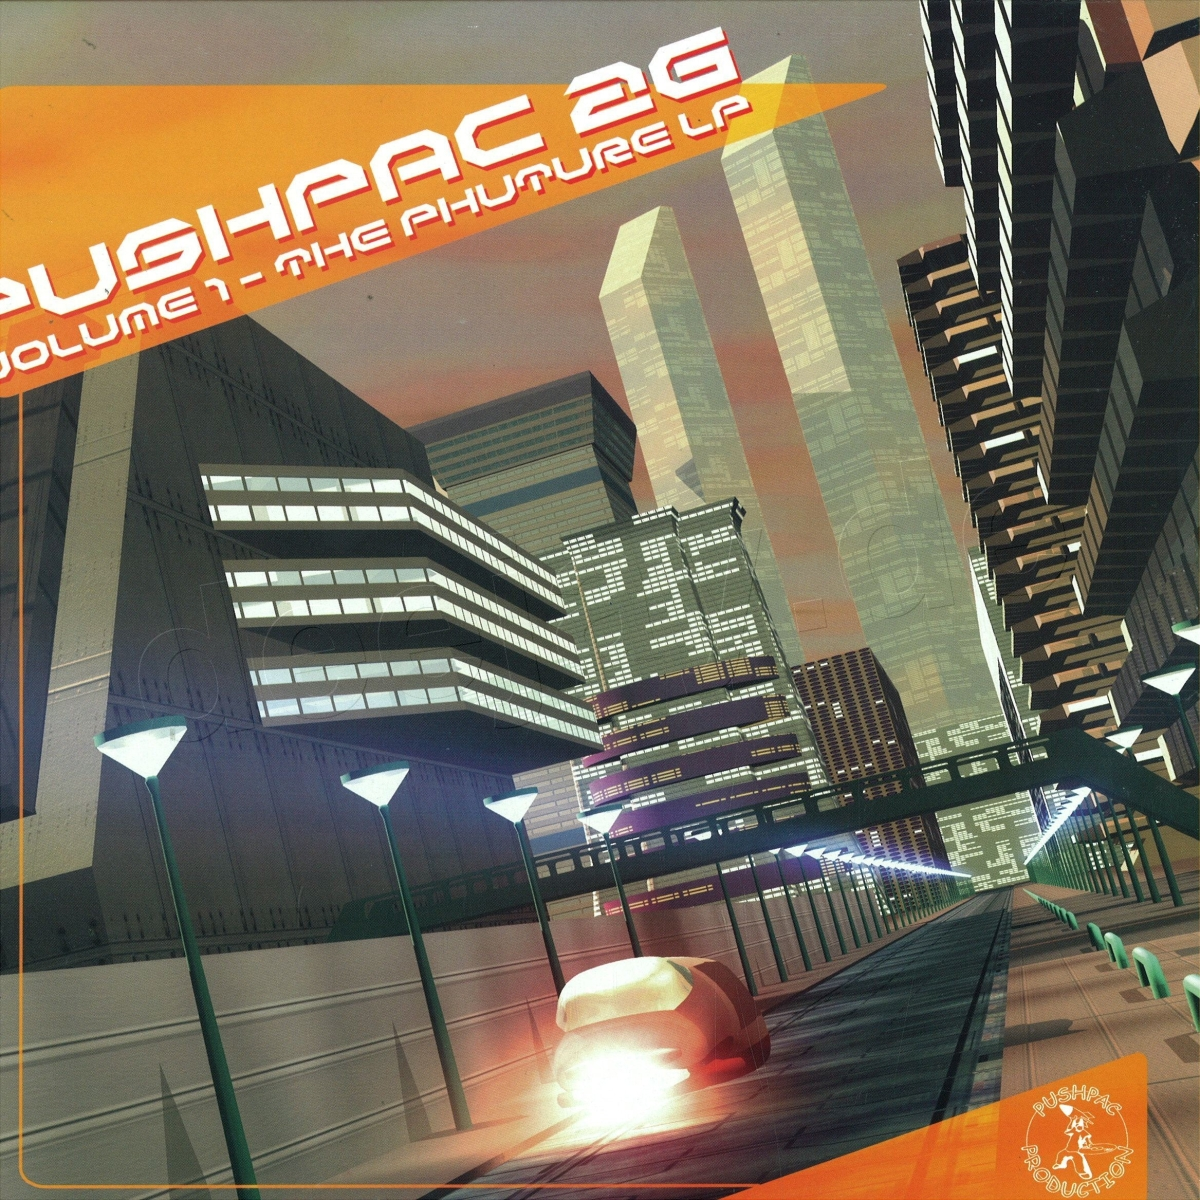 Pushpac 2G Volume One - The Phuture LP